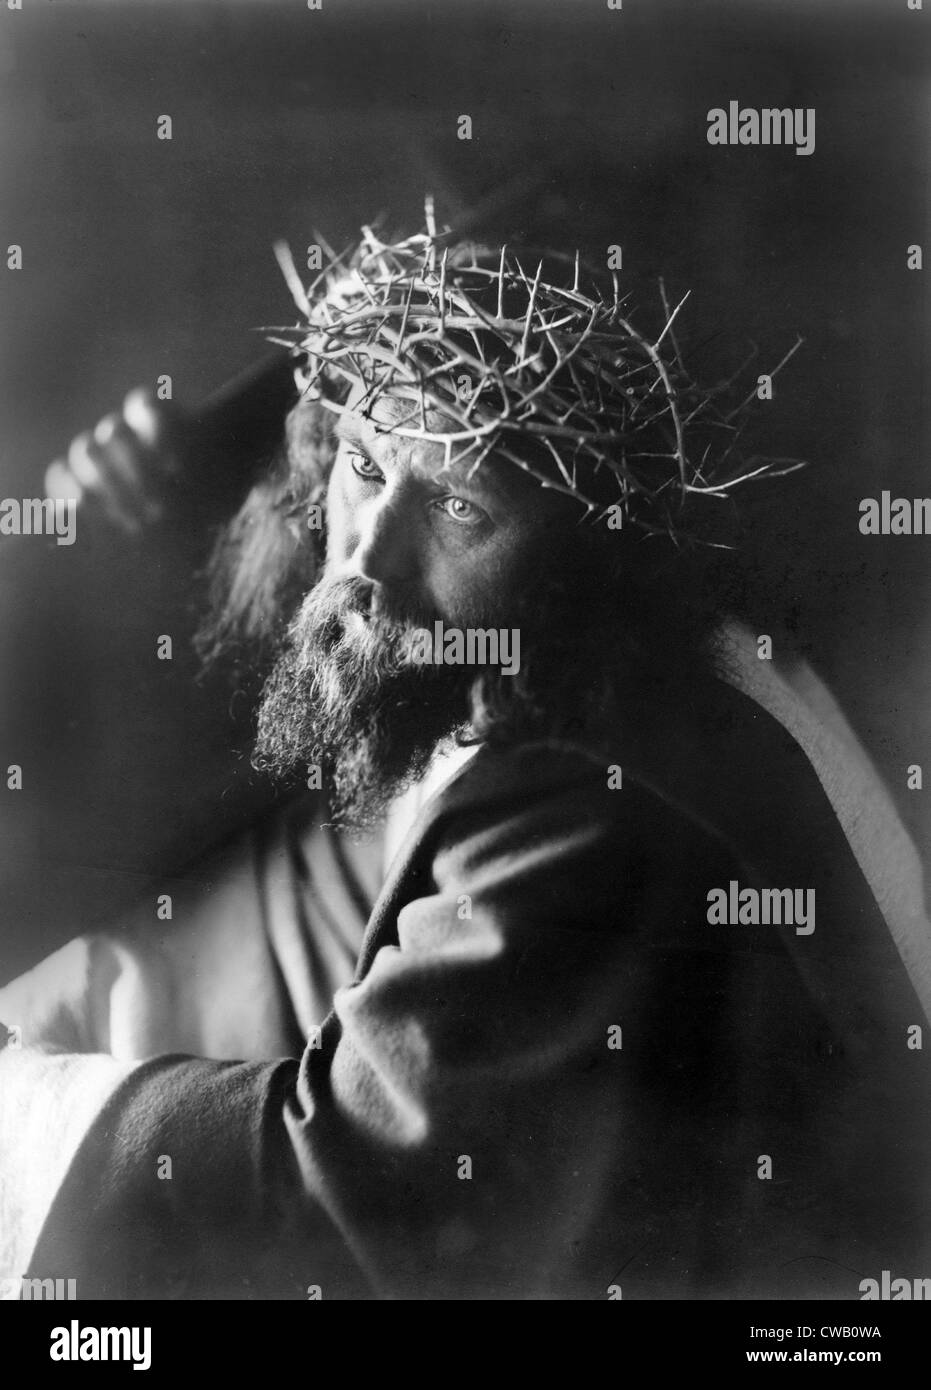 Jesus Christ Man Personifying Wearing Crown Of Thorns And Carrying Cross